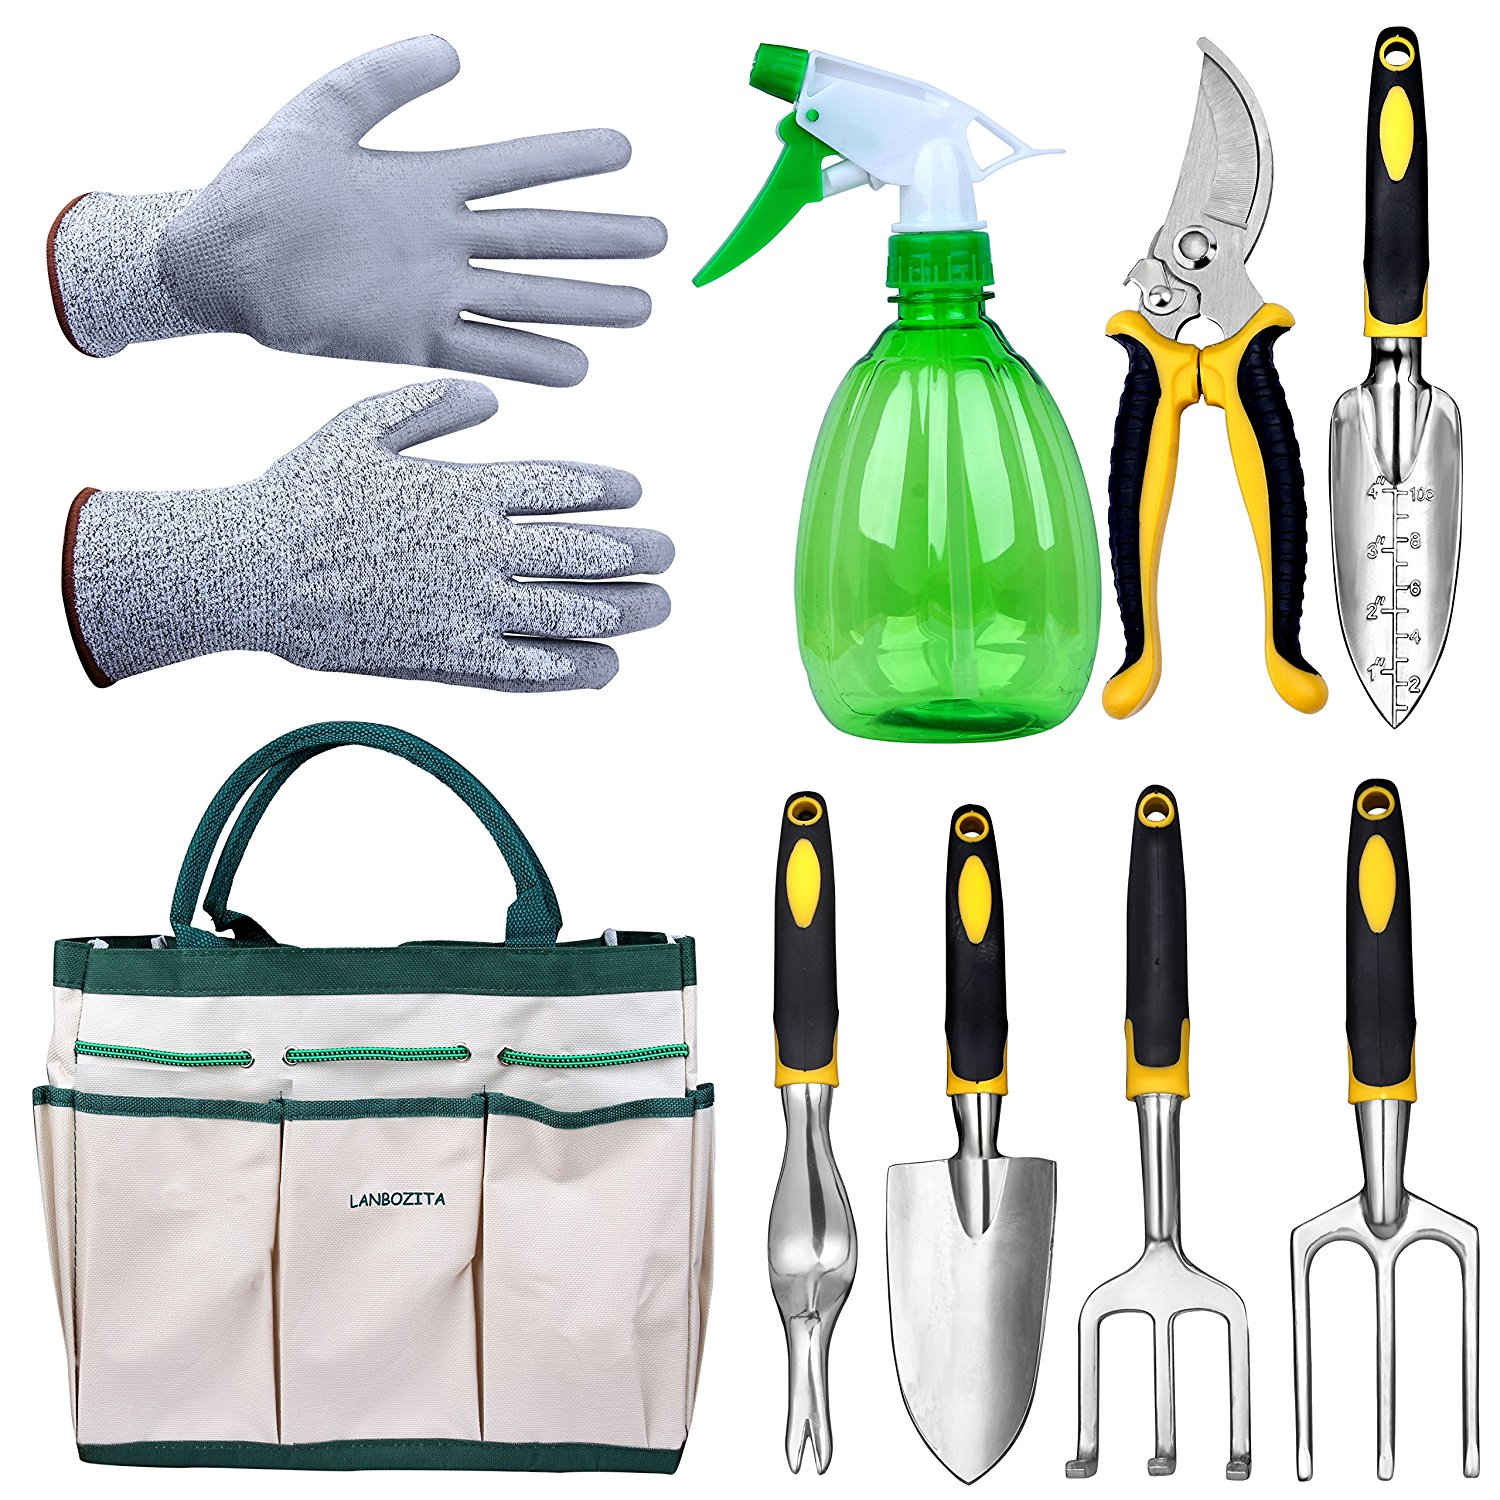 LANBOZITA Garden Tools,9 Piece Gardening Tools Set Including Trowel, Transplanter, Cultivator, Pruner, Weeder, Weeding Fork, Canavas Tote, Sprayer Bottle and Gloves